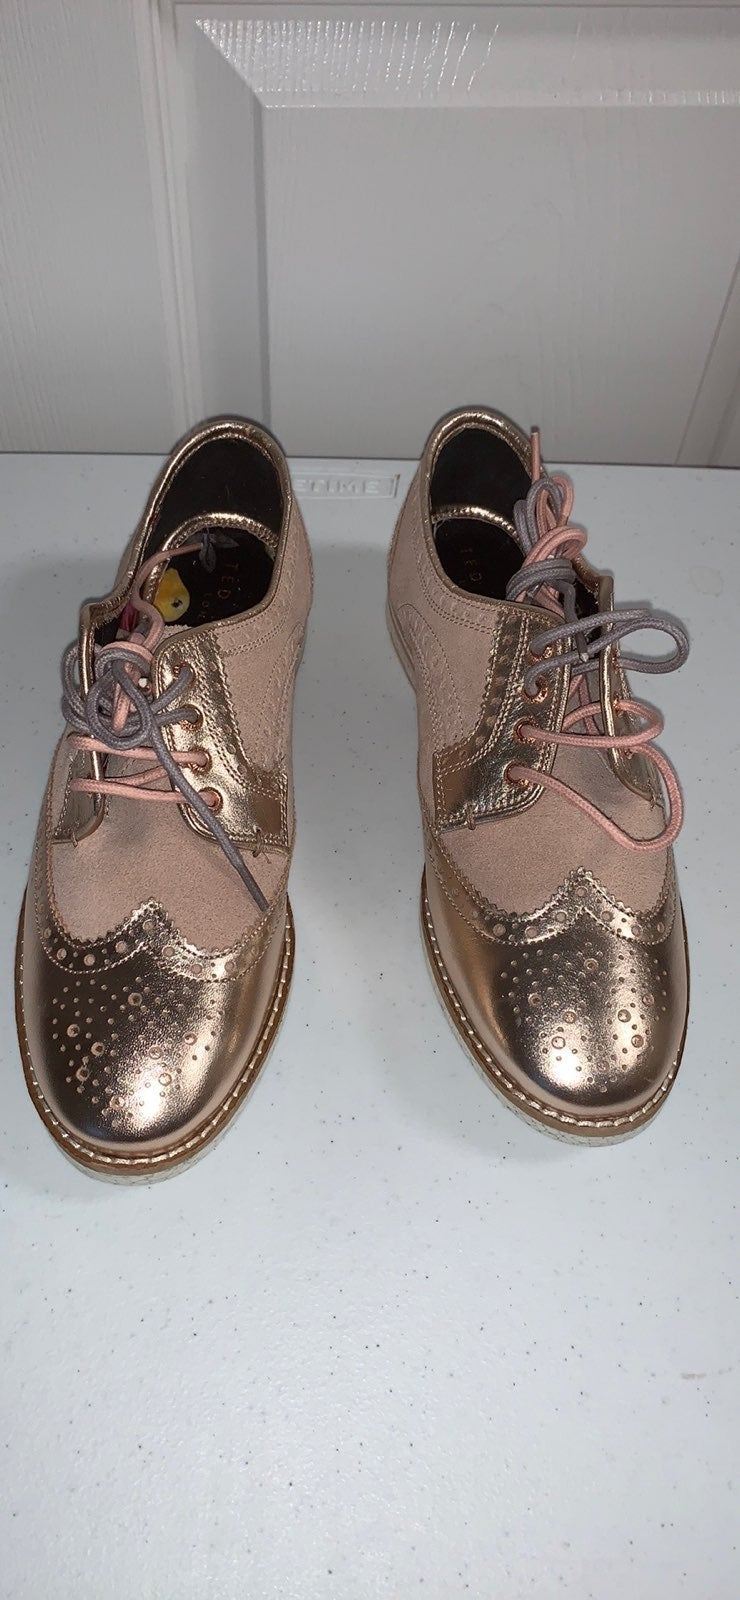 Ted Baker London shoes/ size 36/NWT